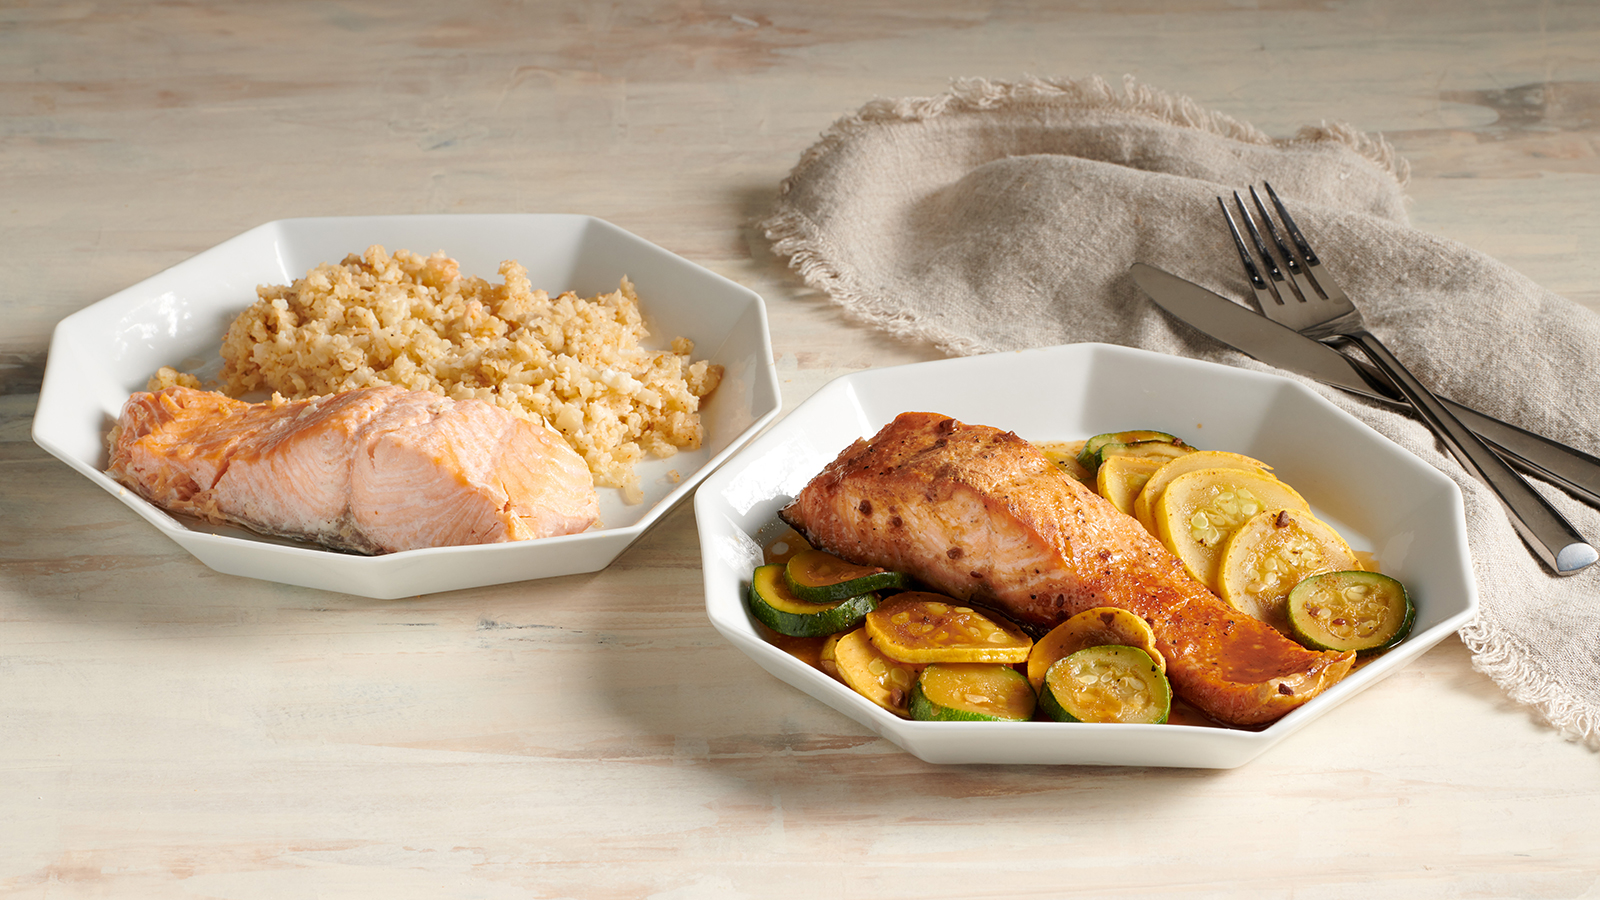 Creole Salmon with Cauliflower Rice & Korean BBQ Salmon with Zucchini and Squash Steamer Bags